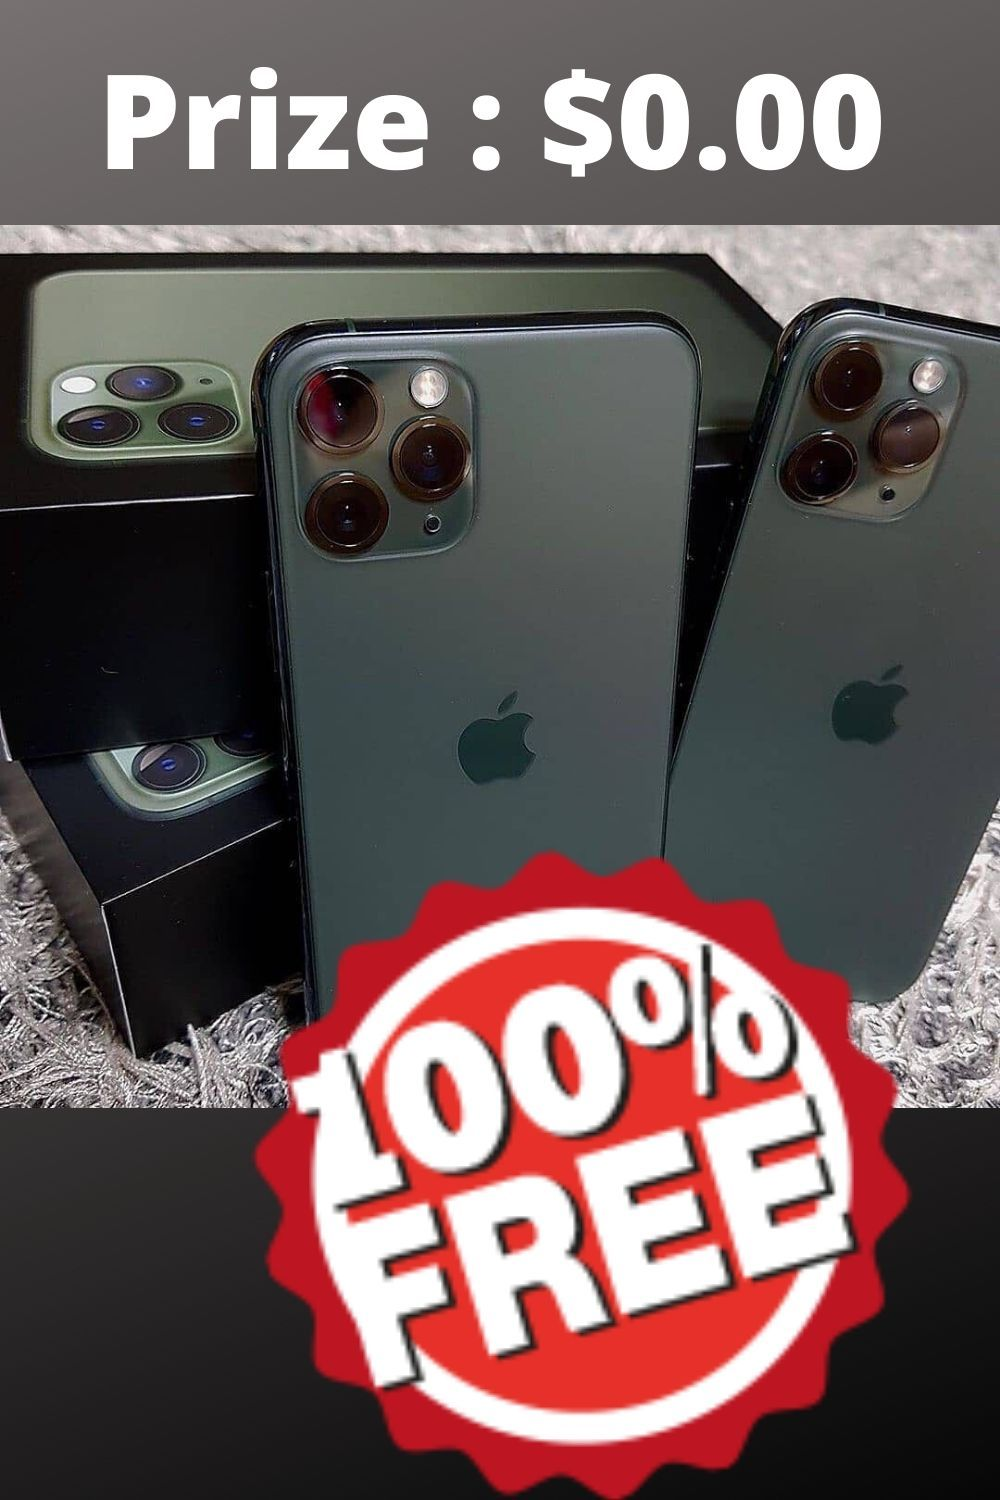 7f934a2e604242124e95053d5048fe52 - How To Get Iphone X For Free In India